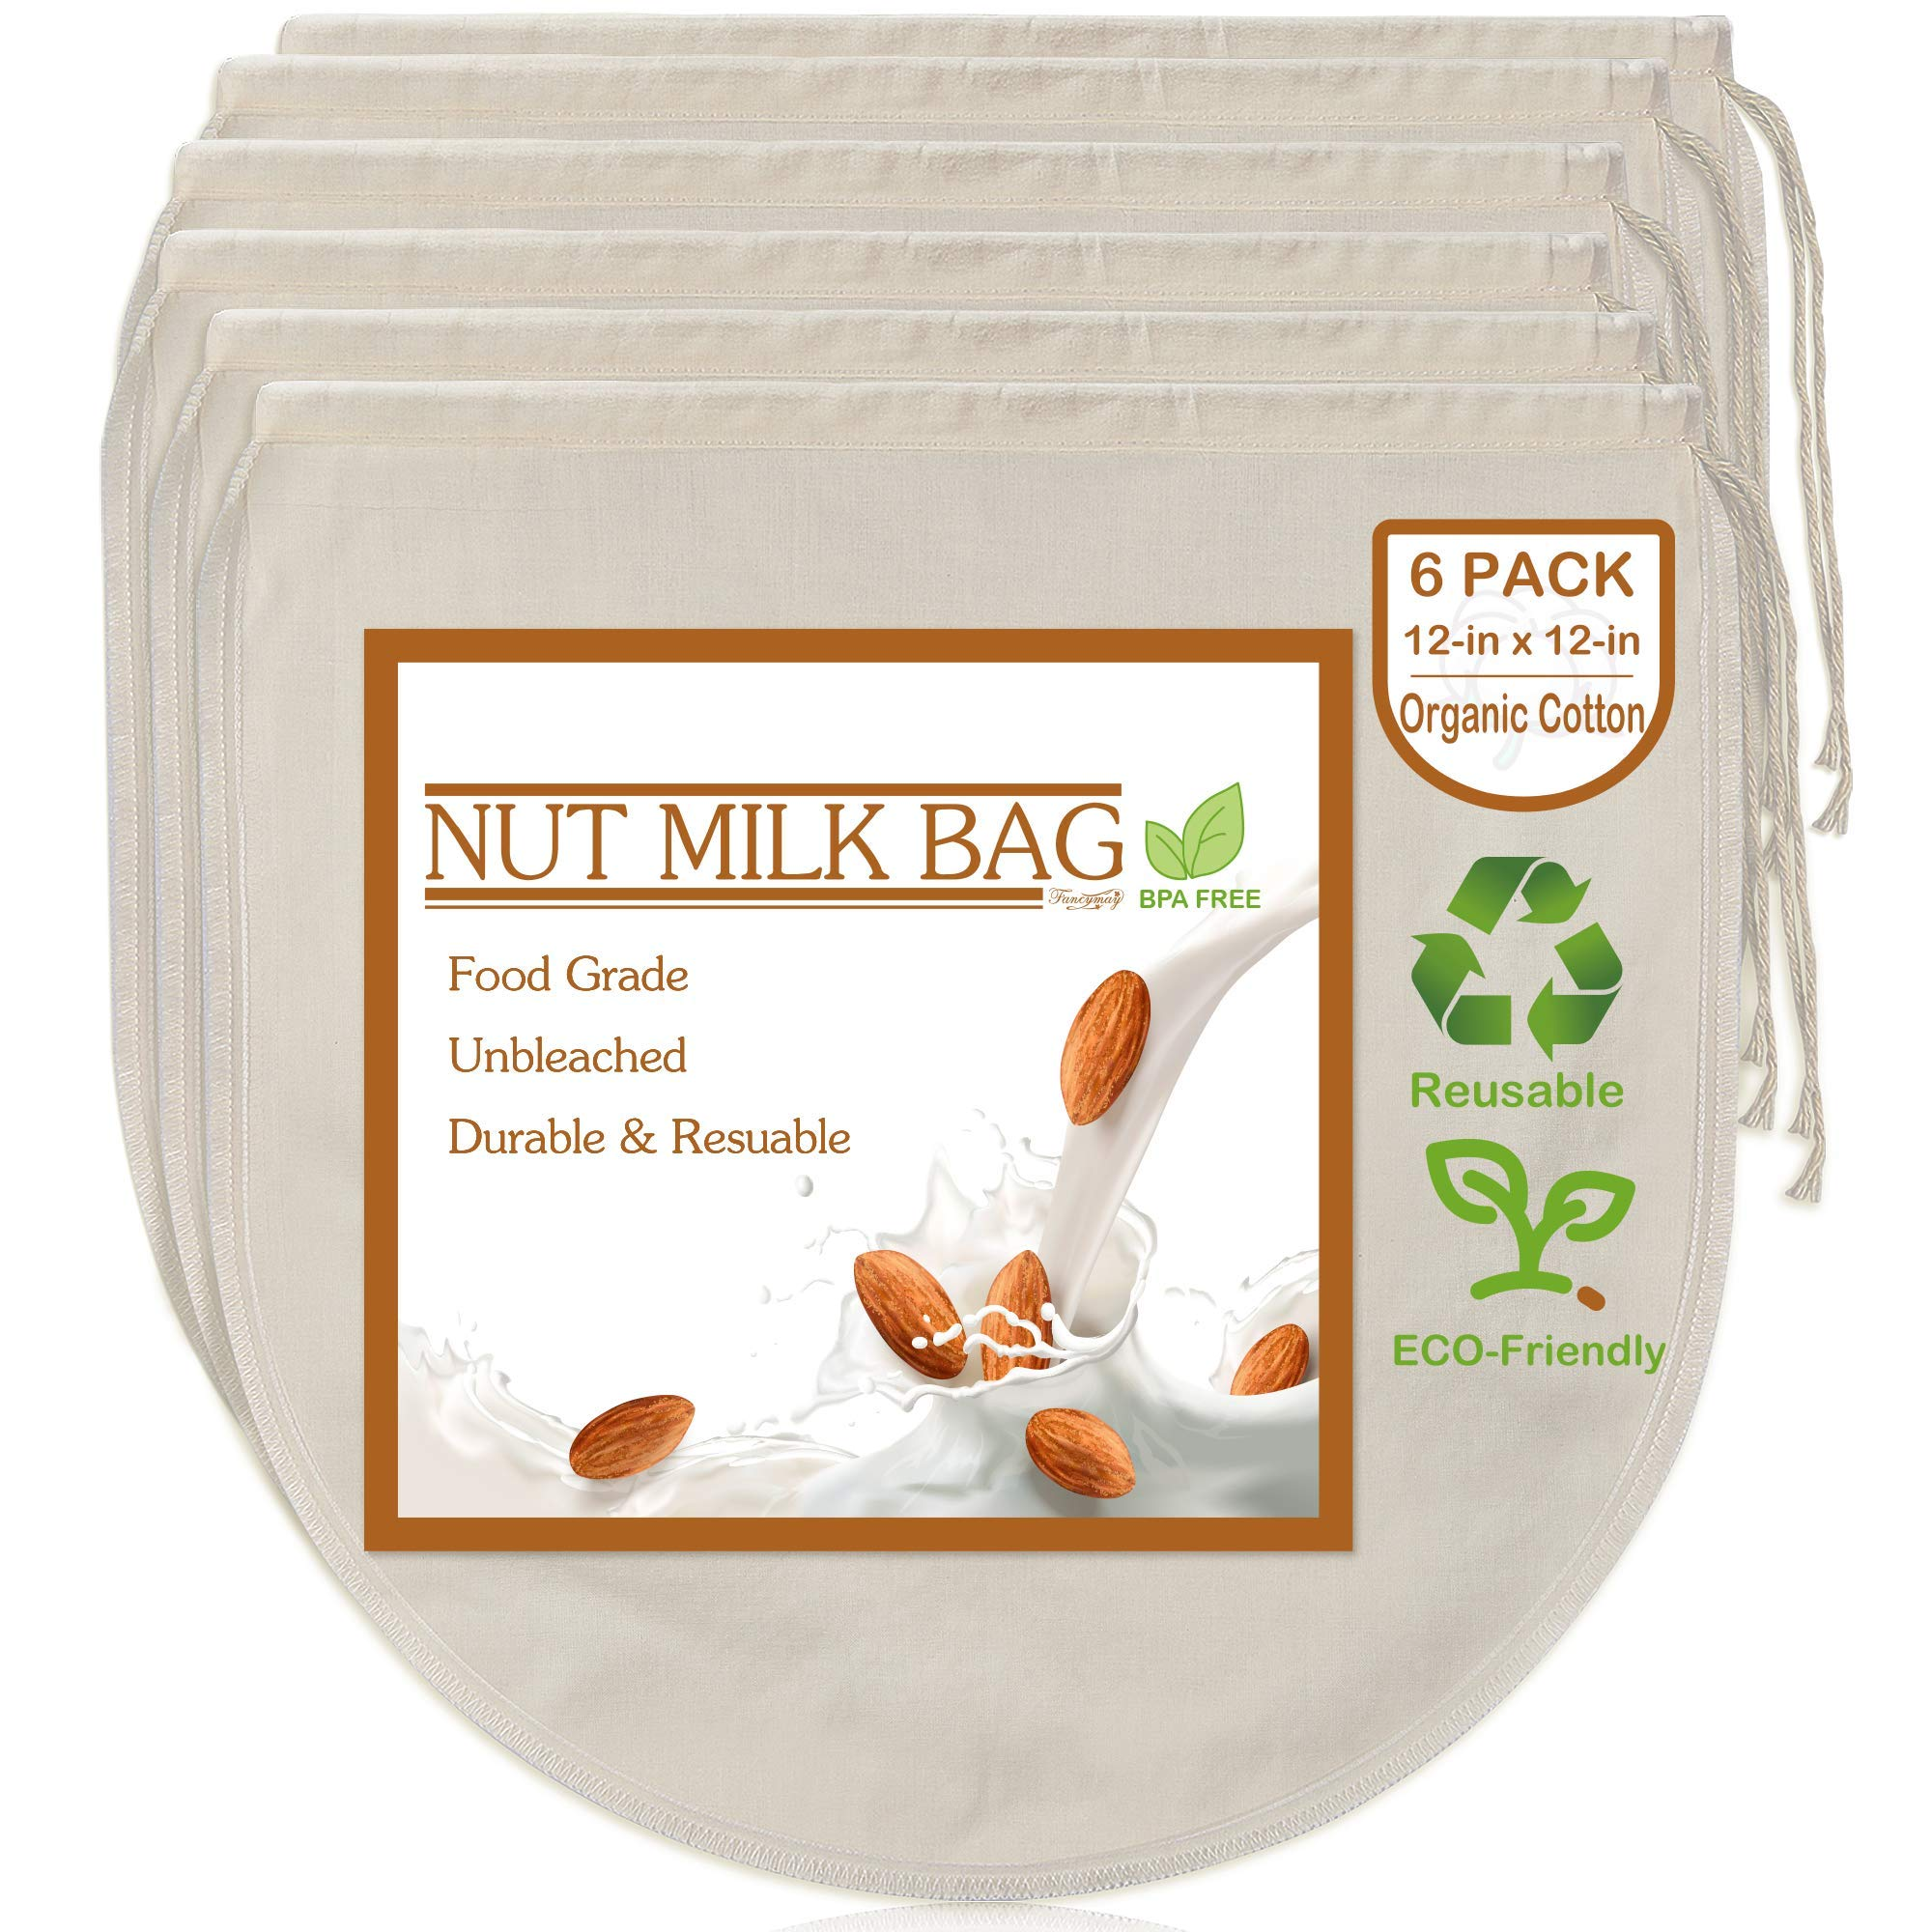 """6 Pack 12""""x12"""" Nut Milk Bags - 100% Unbleached Organic Cotton Cheesecloth, Reusable Food Strainer Colander For Straining Almond/Oat Milk, Celery Juice, Cold Brew Coffee, Yogurt and Cheese Making"""